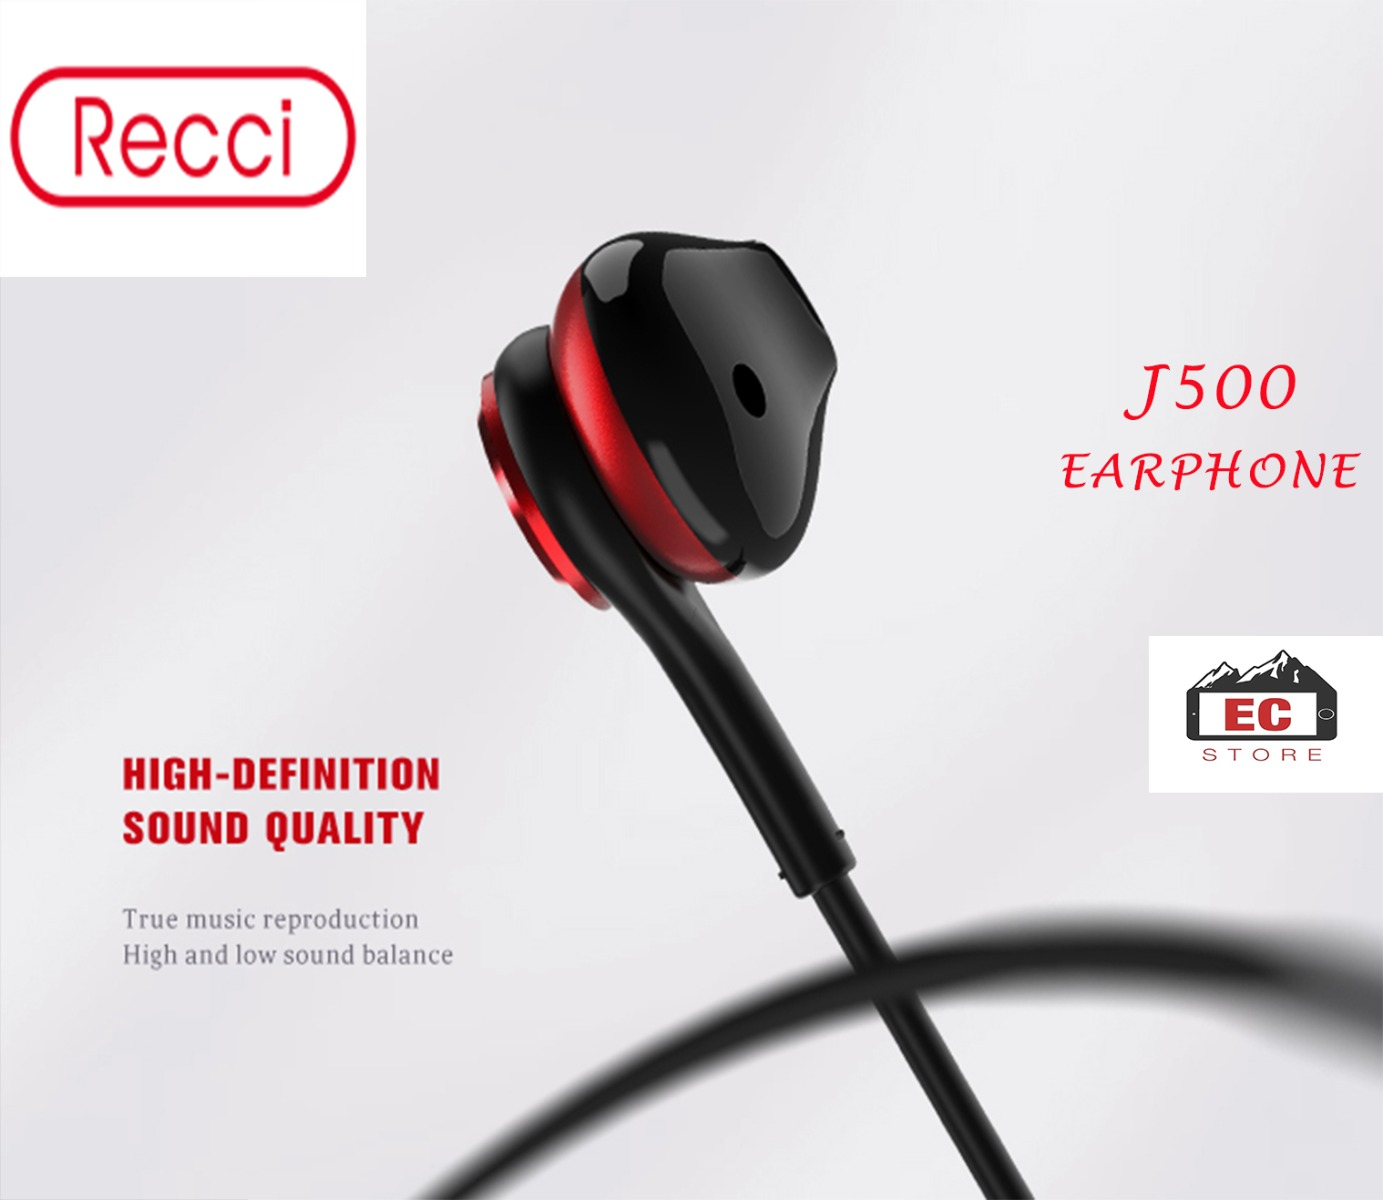 Recci Design J500 Waterproof  Wired 3.5mm Earbud,HD Voice Call, Rich Bass Suitable For Call,Music & Gaming